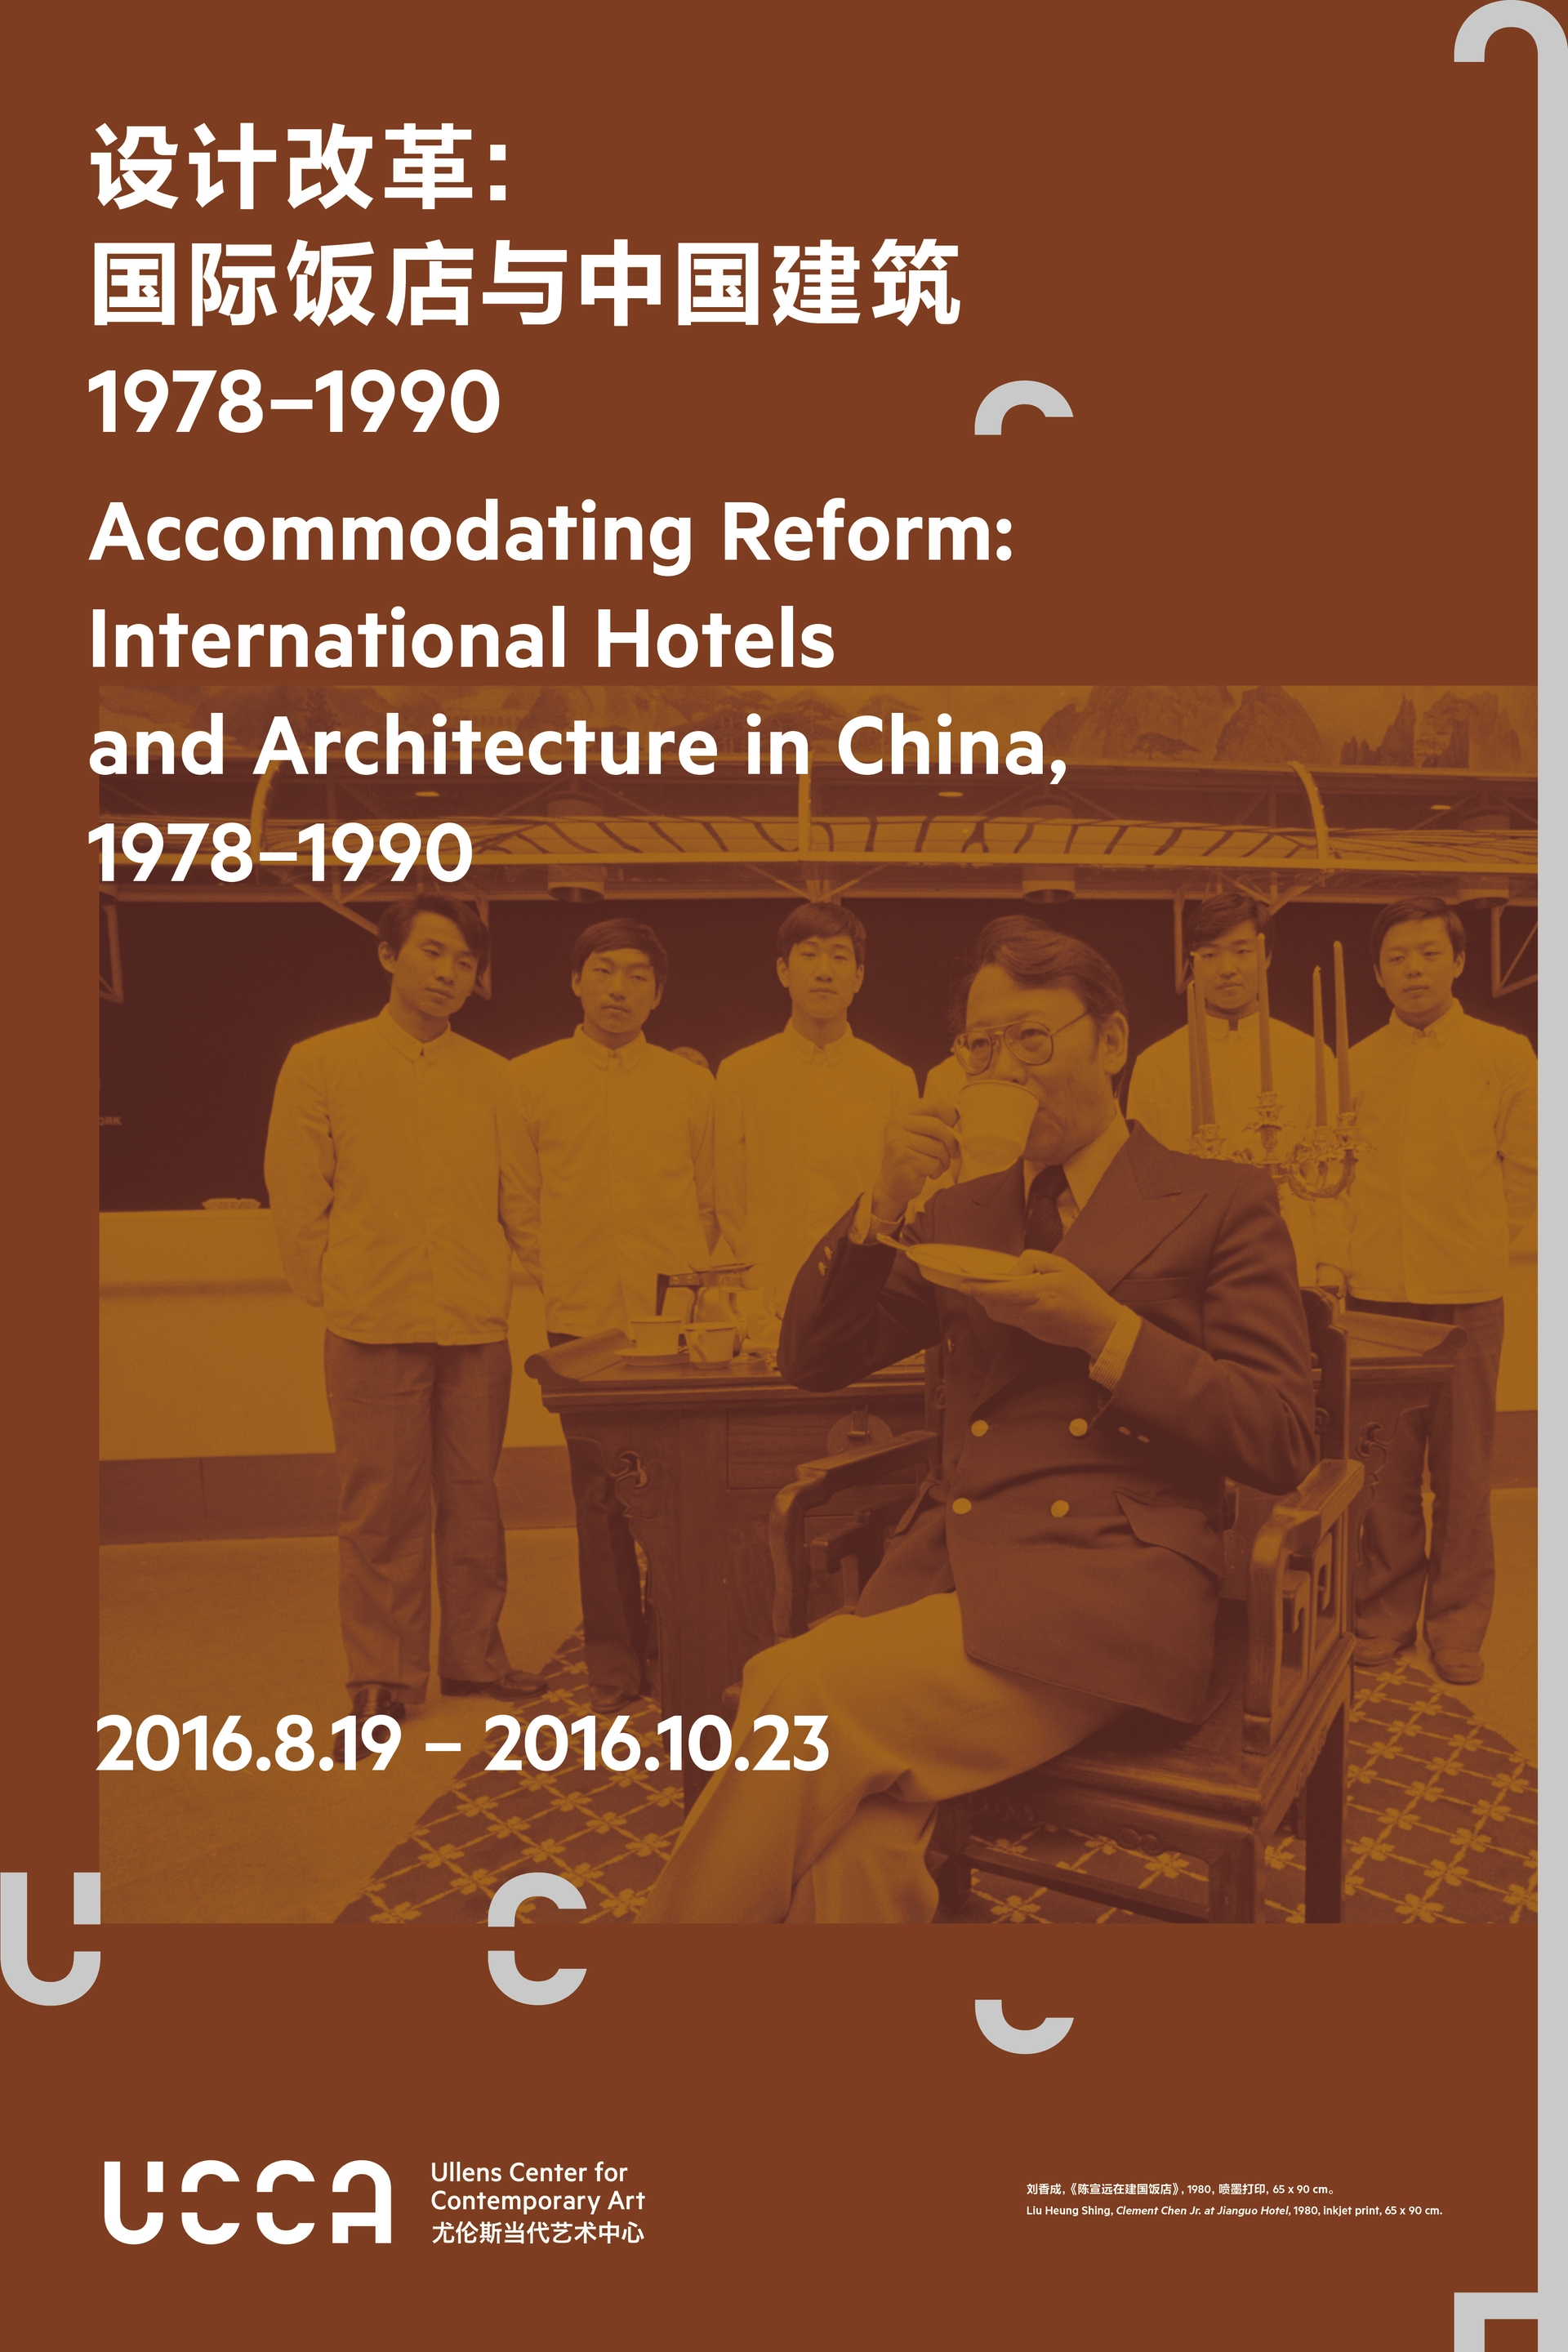 Accommodating Reform: International Hotels and Architecture in China, 1978-1990